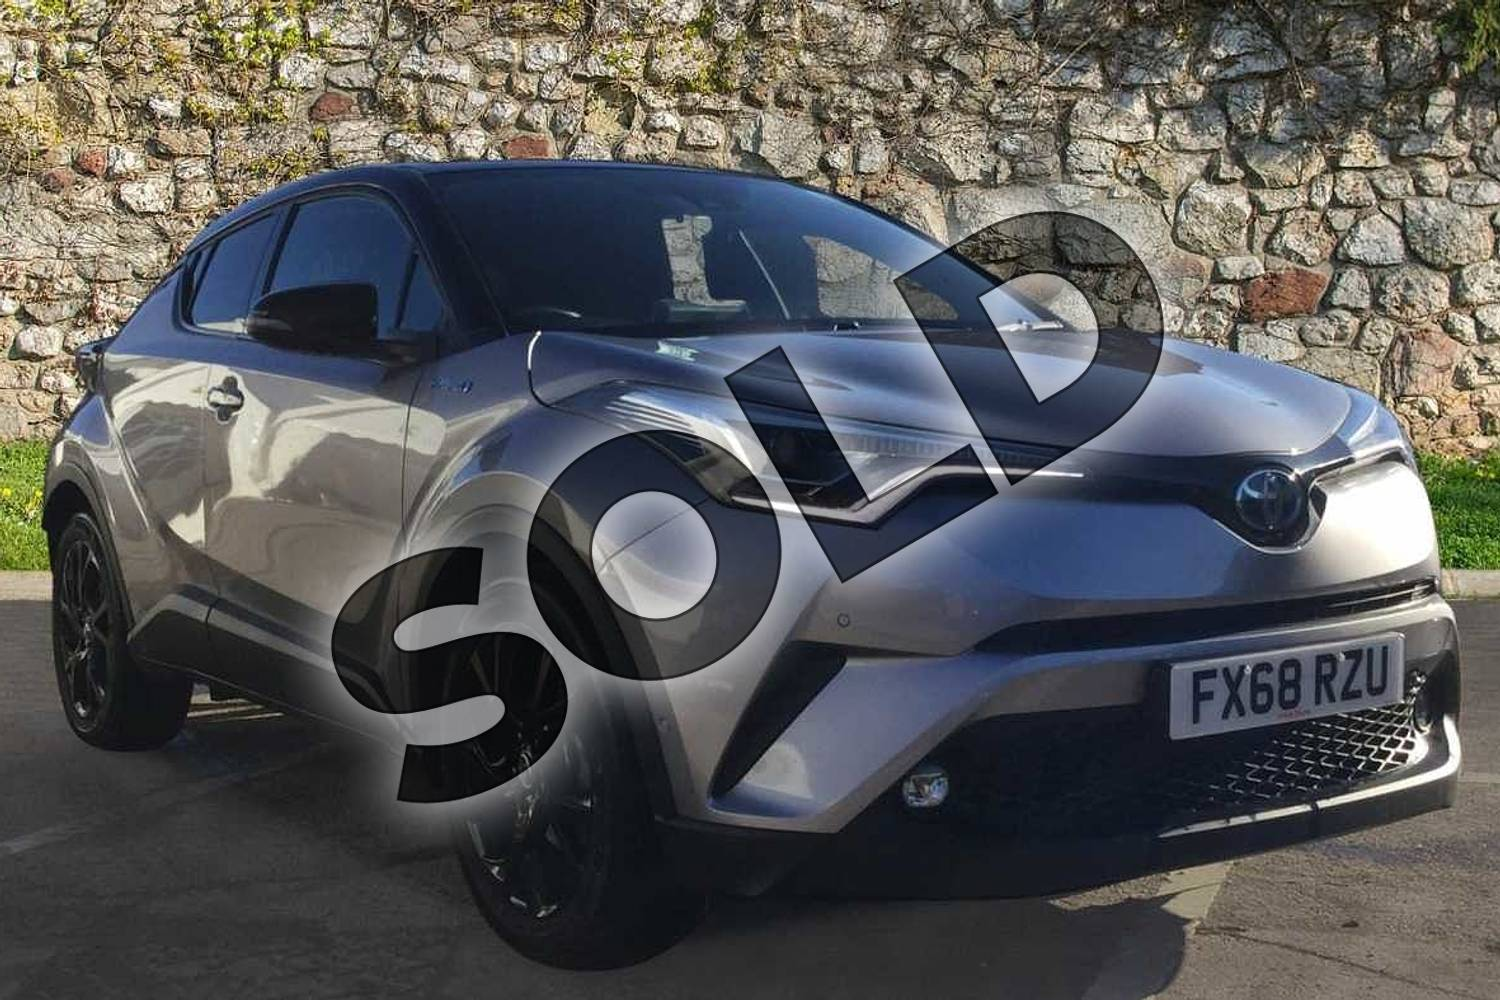 2018 Toyota C-HR Hatchback 1.8 Hybrid Dynamic 5dr CVT in Silver at Listers Toyota Nuneaton